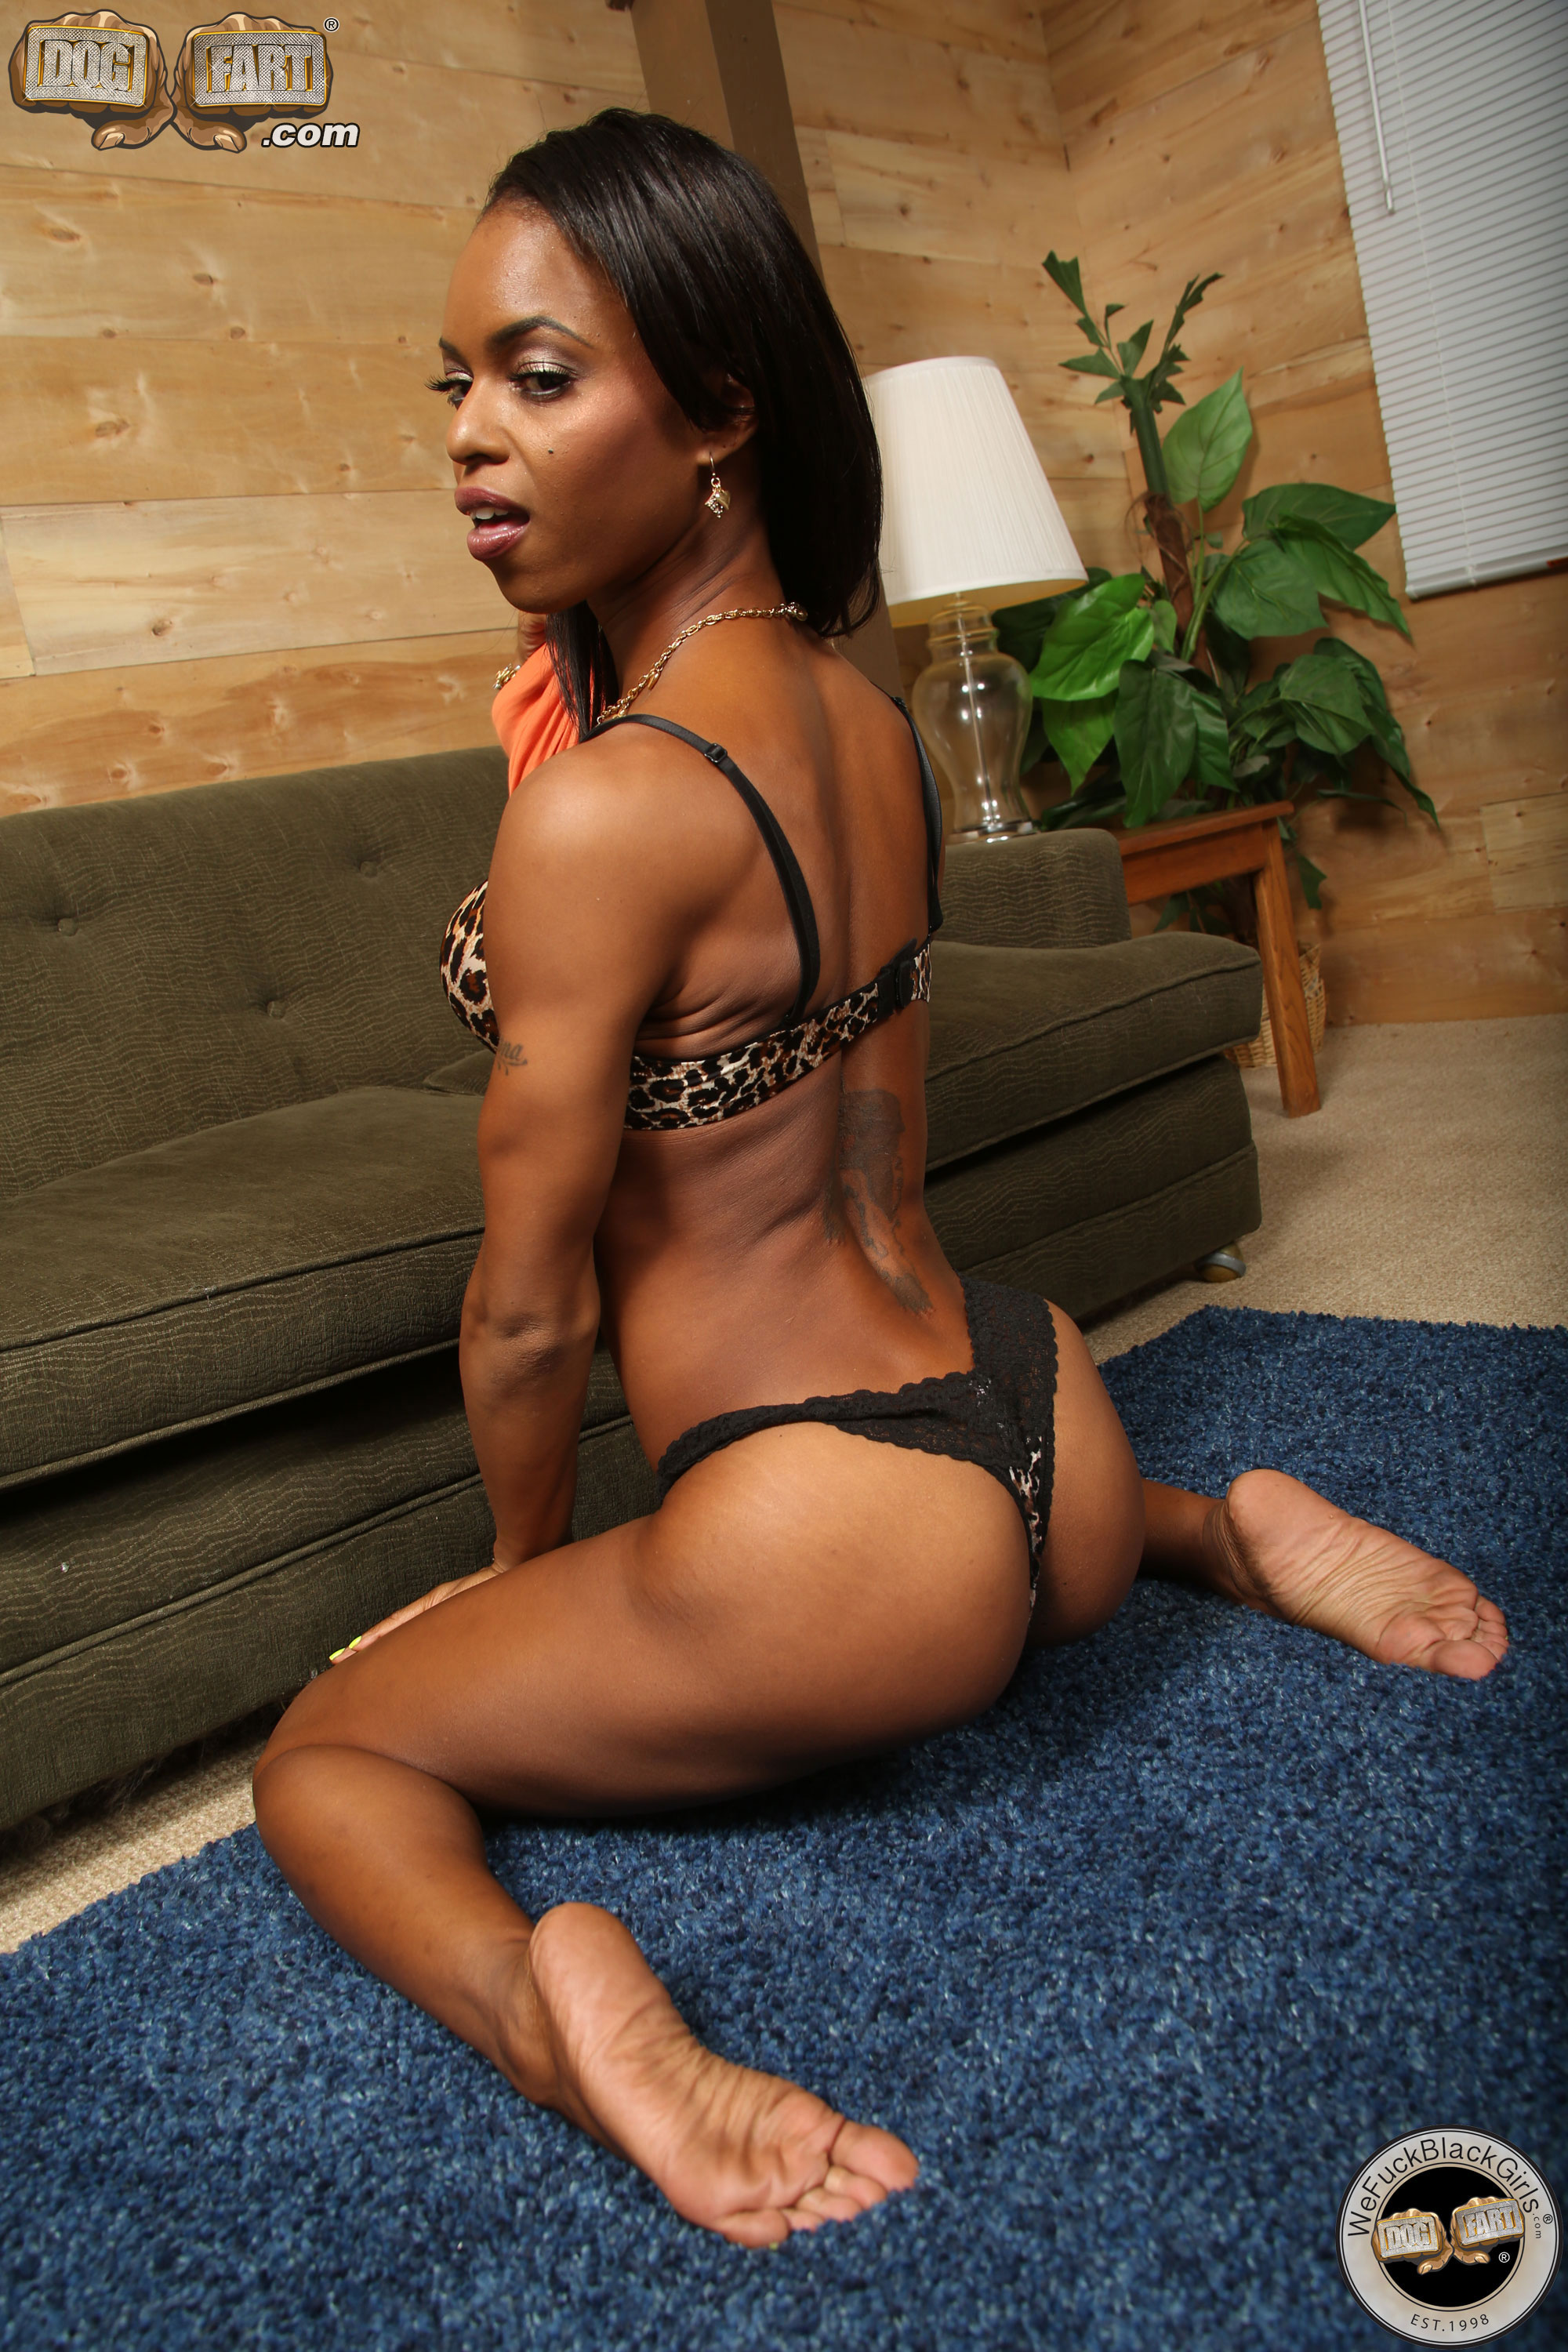 galleries WeFuckBlackGirls content marie luv pic 08